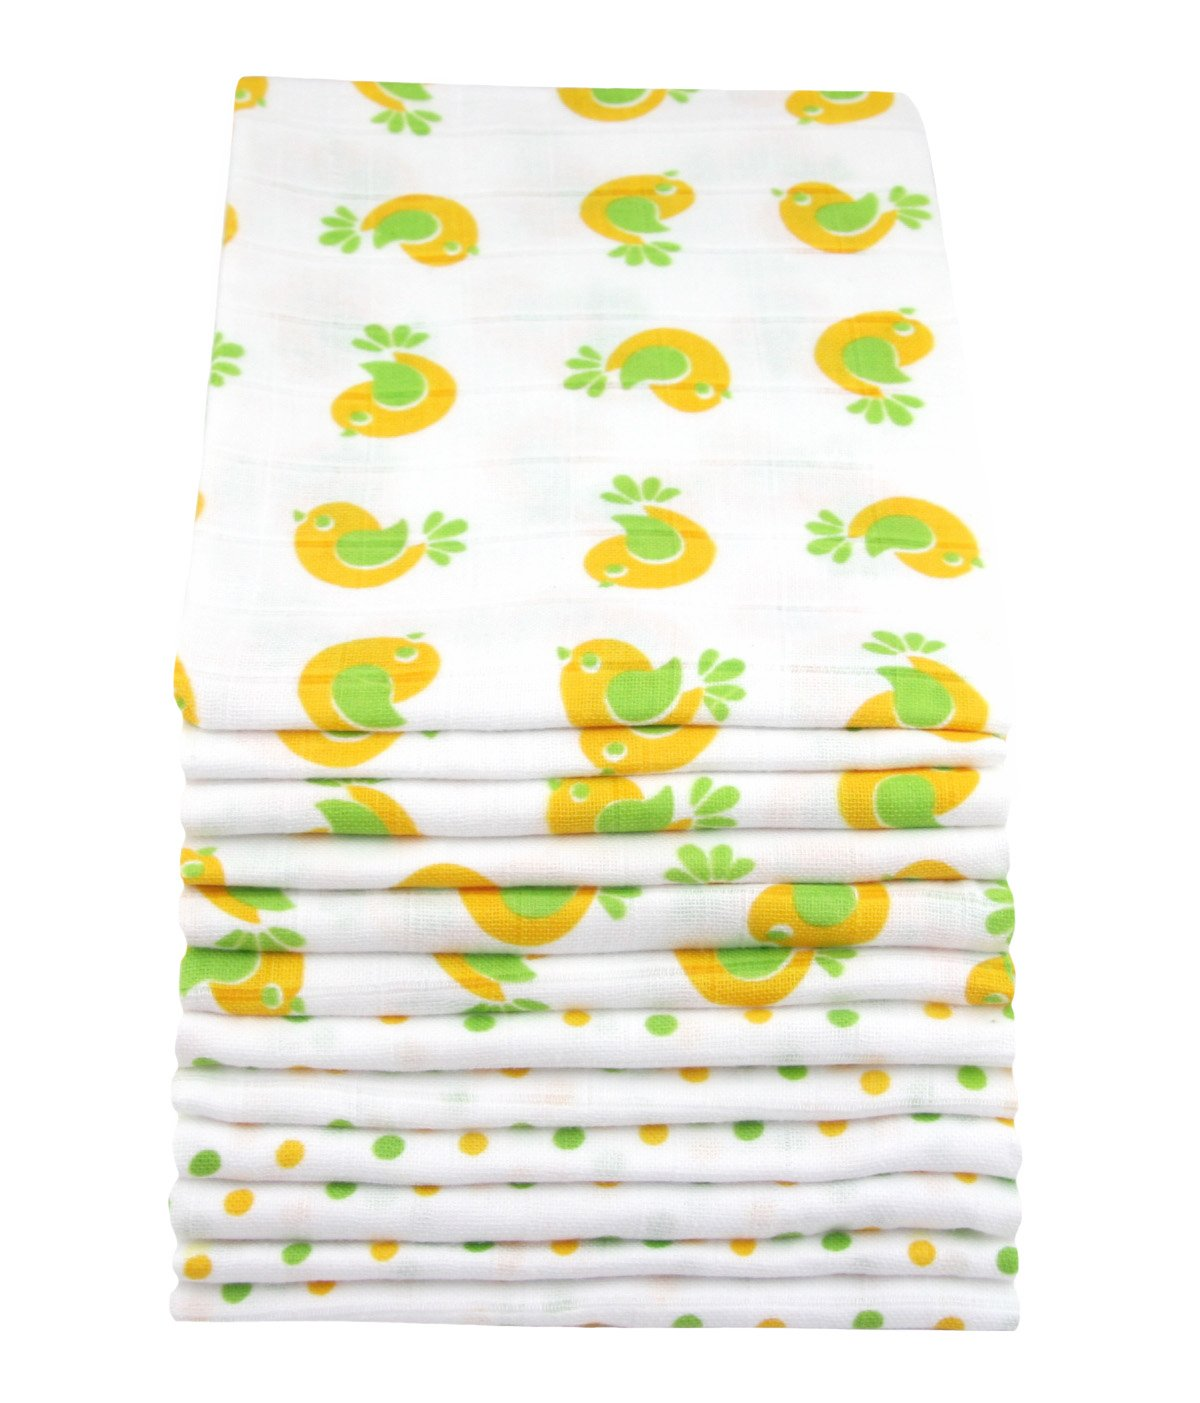 12 Pack MuslinZ White with Print Premium High Quality Baby Muslin Squares/Wraps/Muslin Cloths 100% Cotton MUZ12-YTS